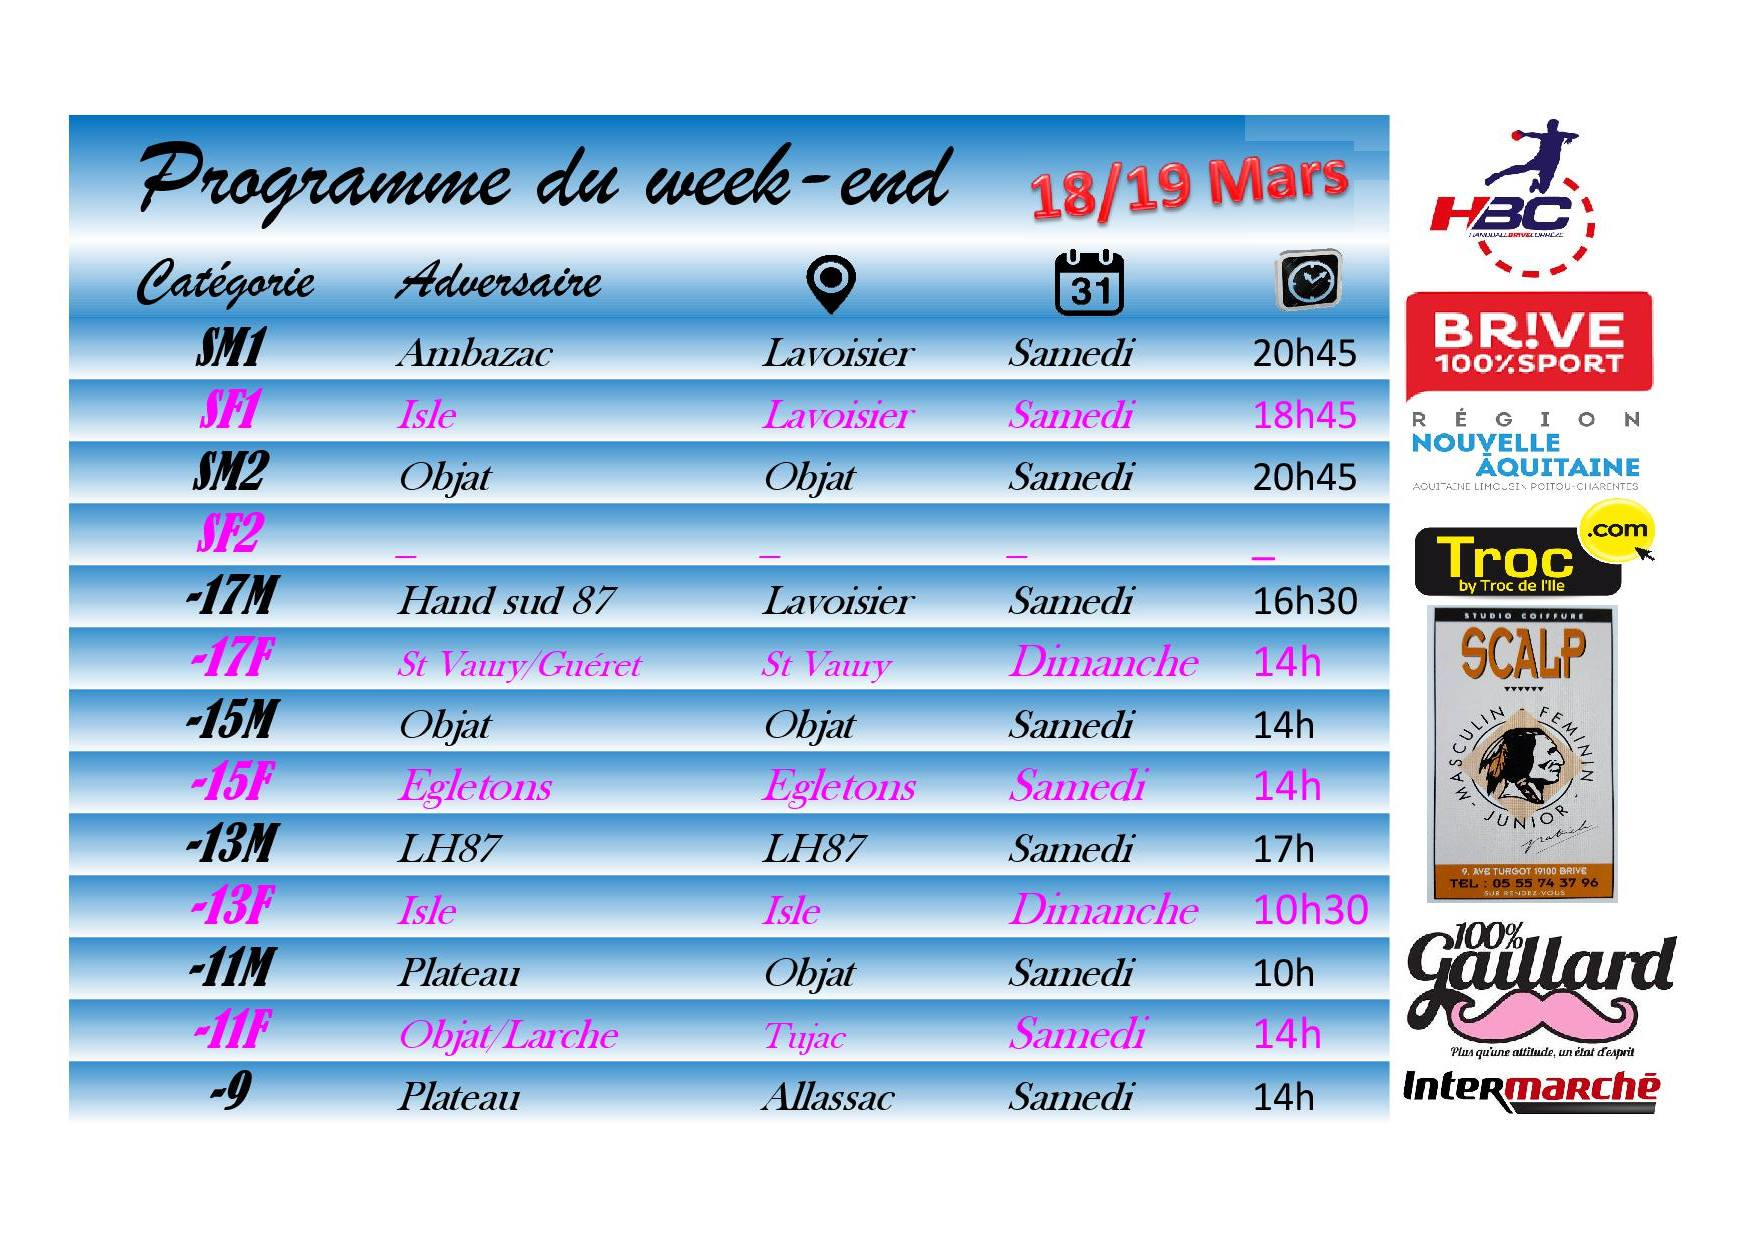 MATCHS DU WEEK-END